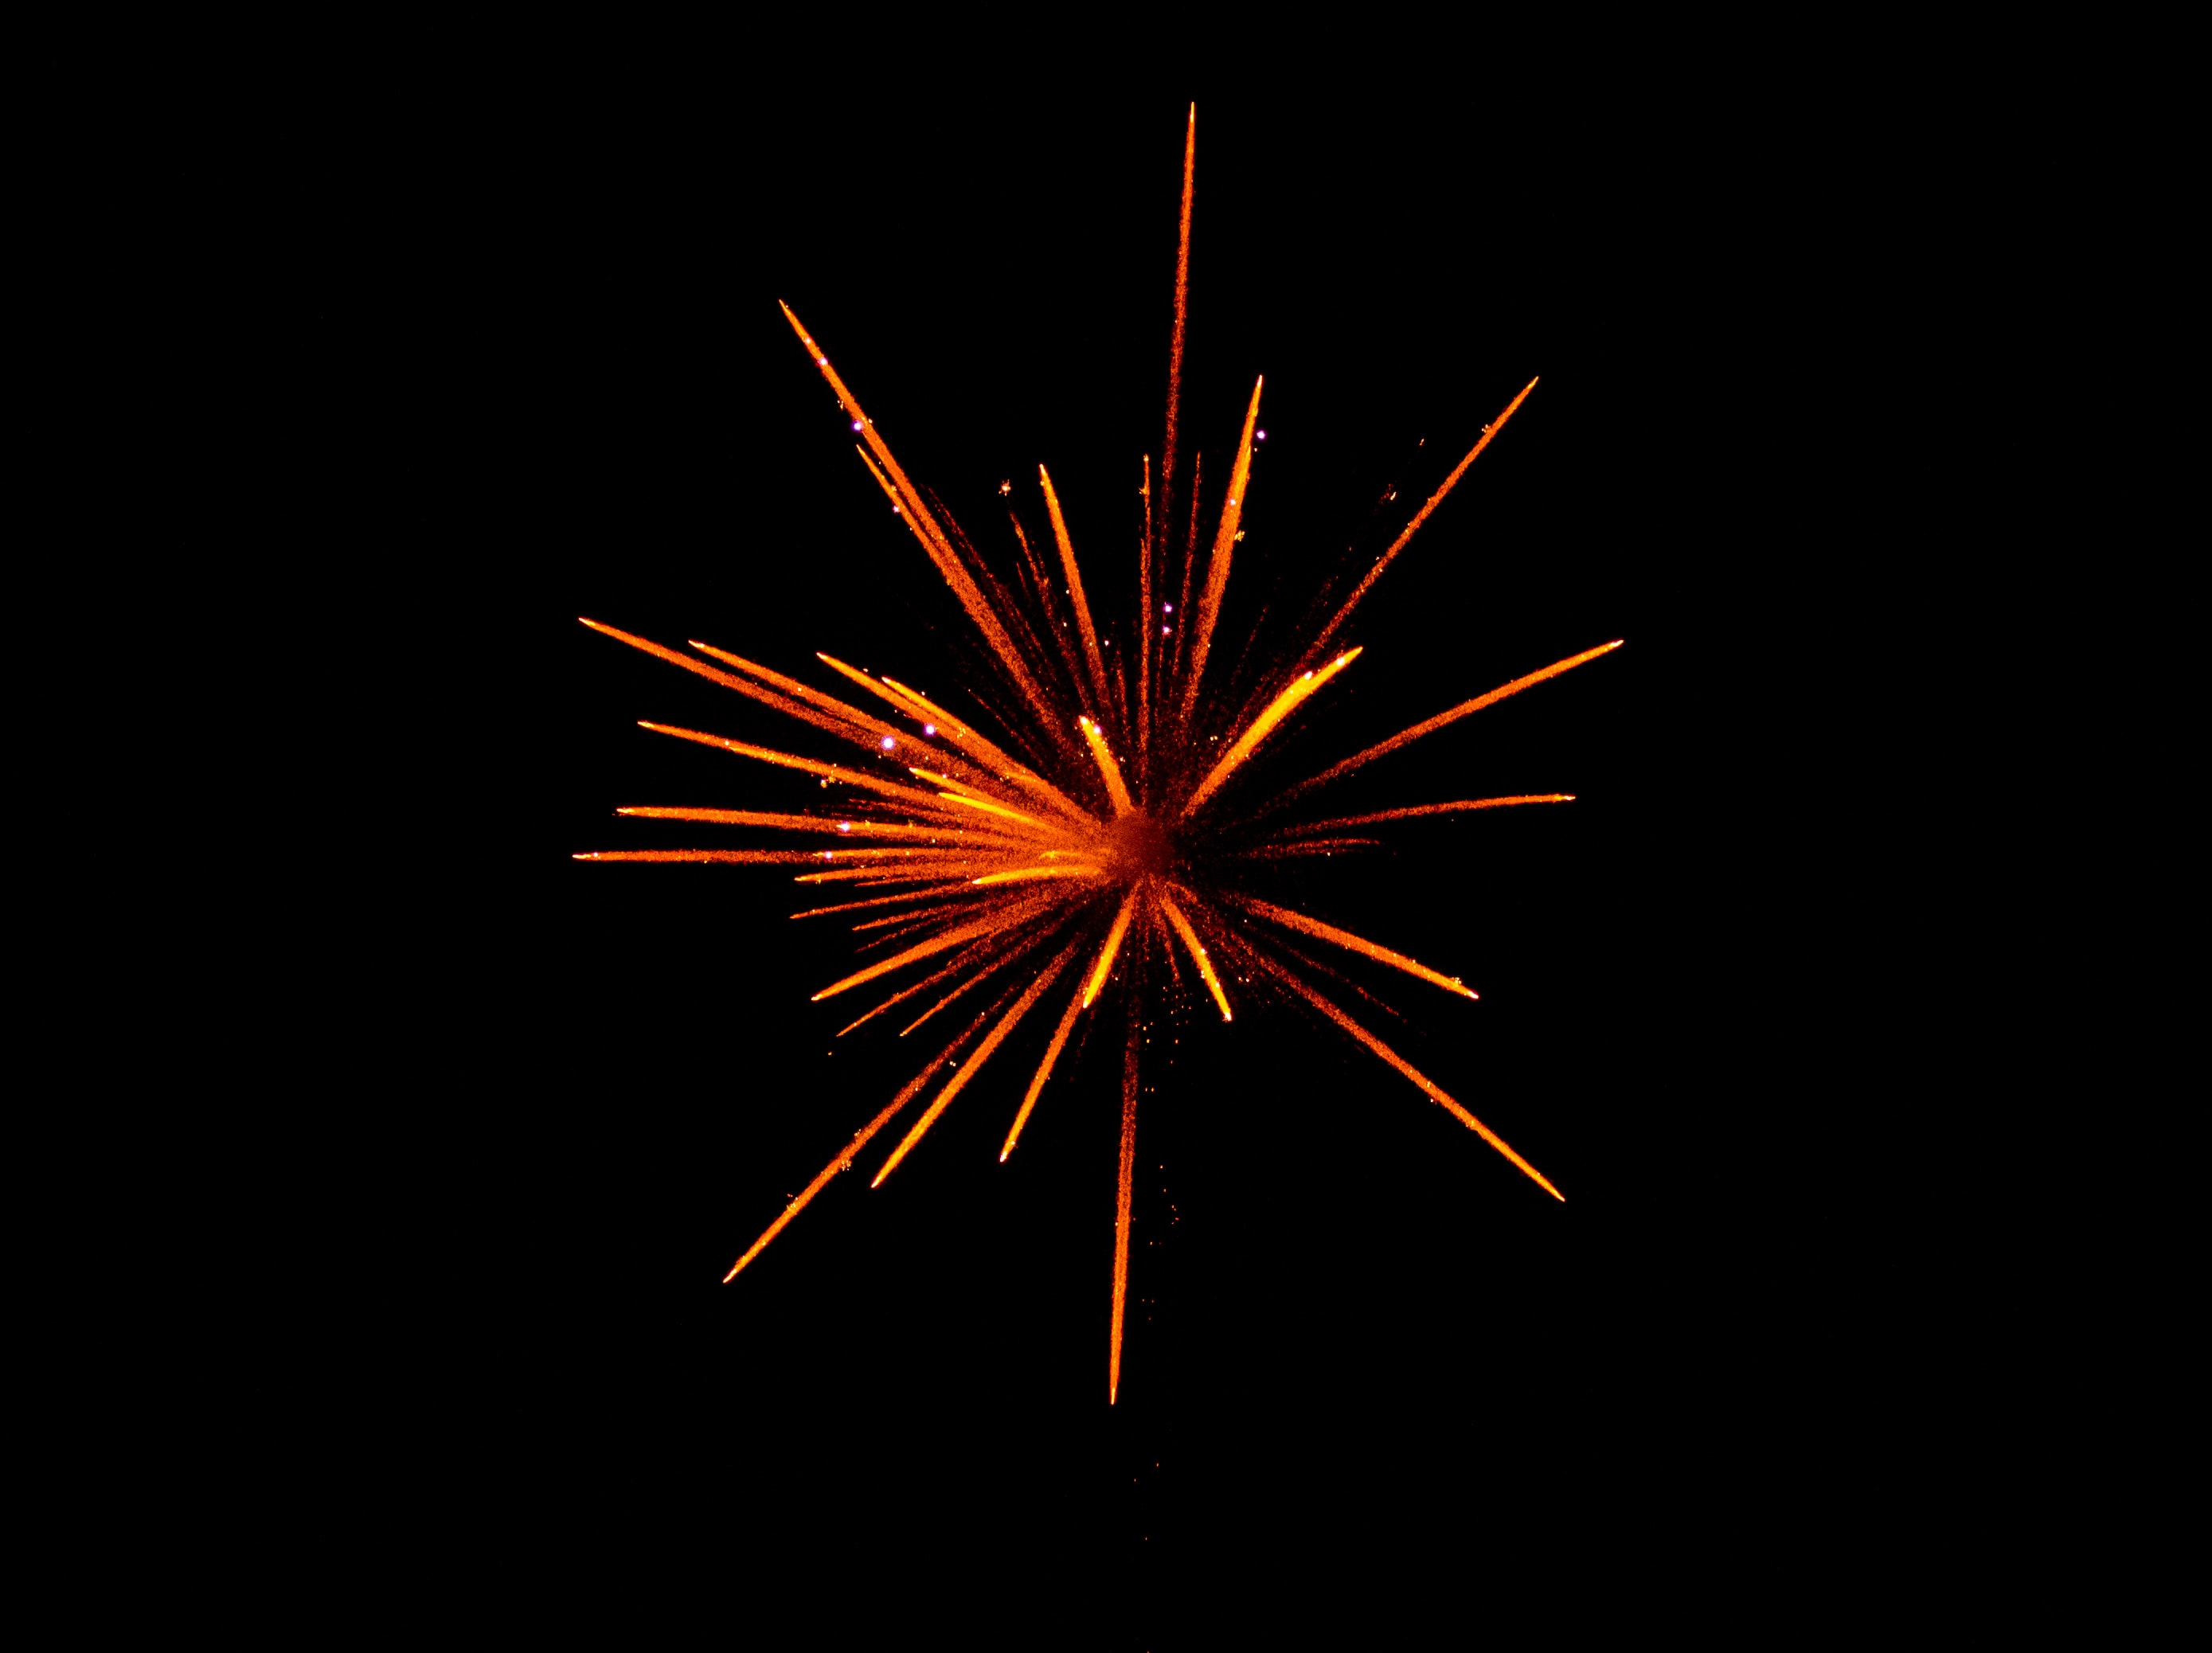 red and orange fireworks in black background